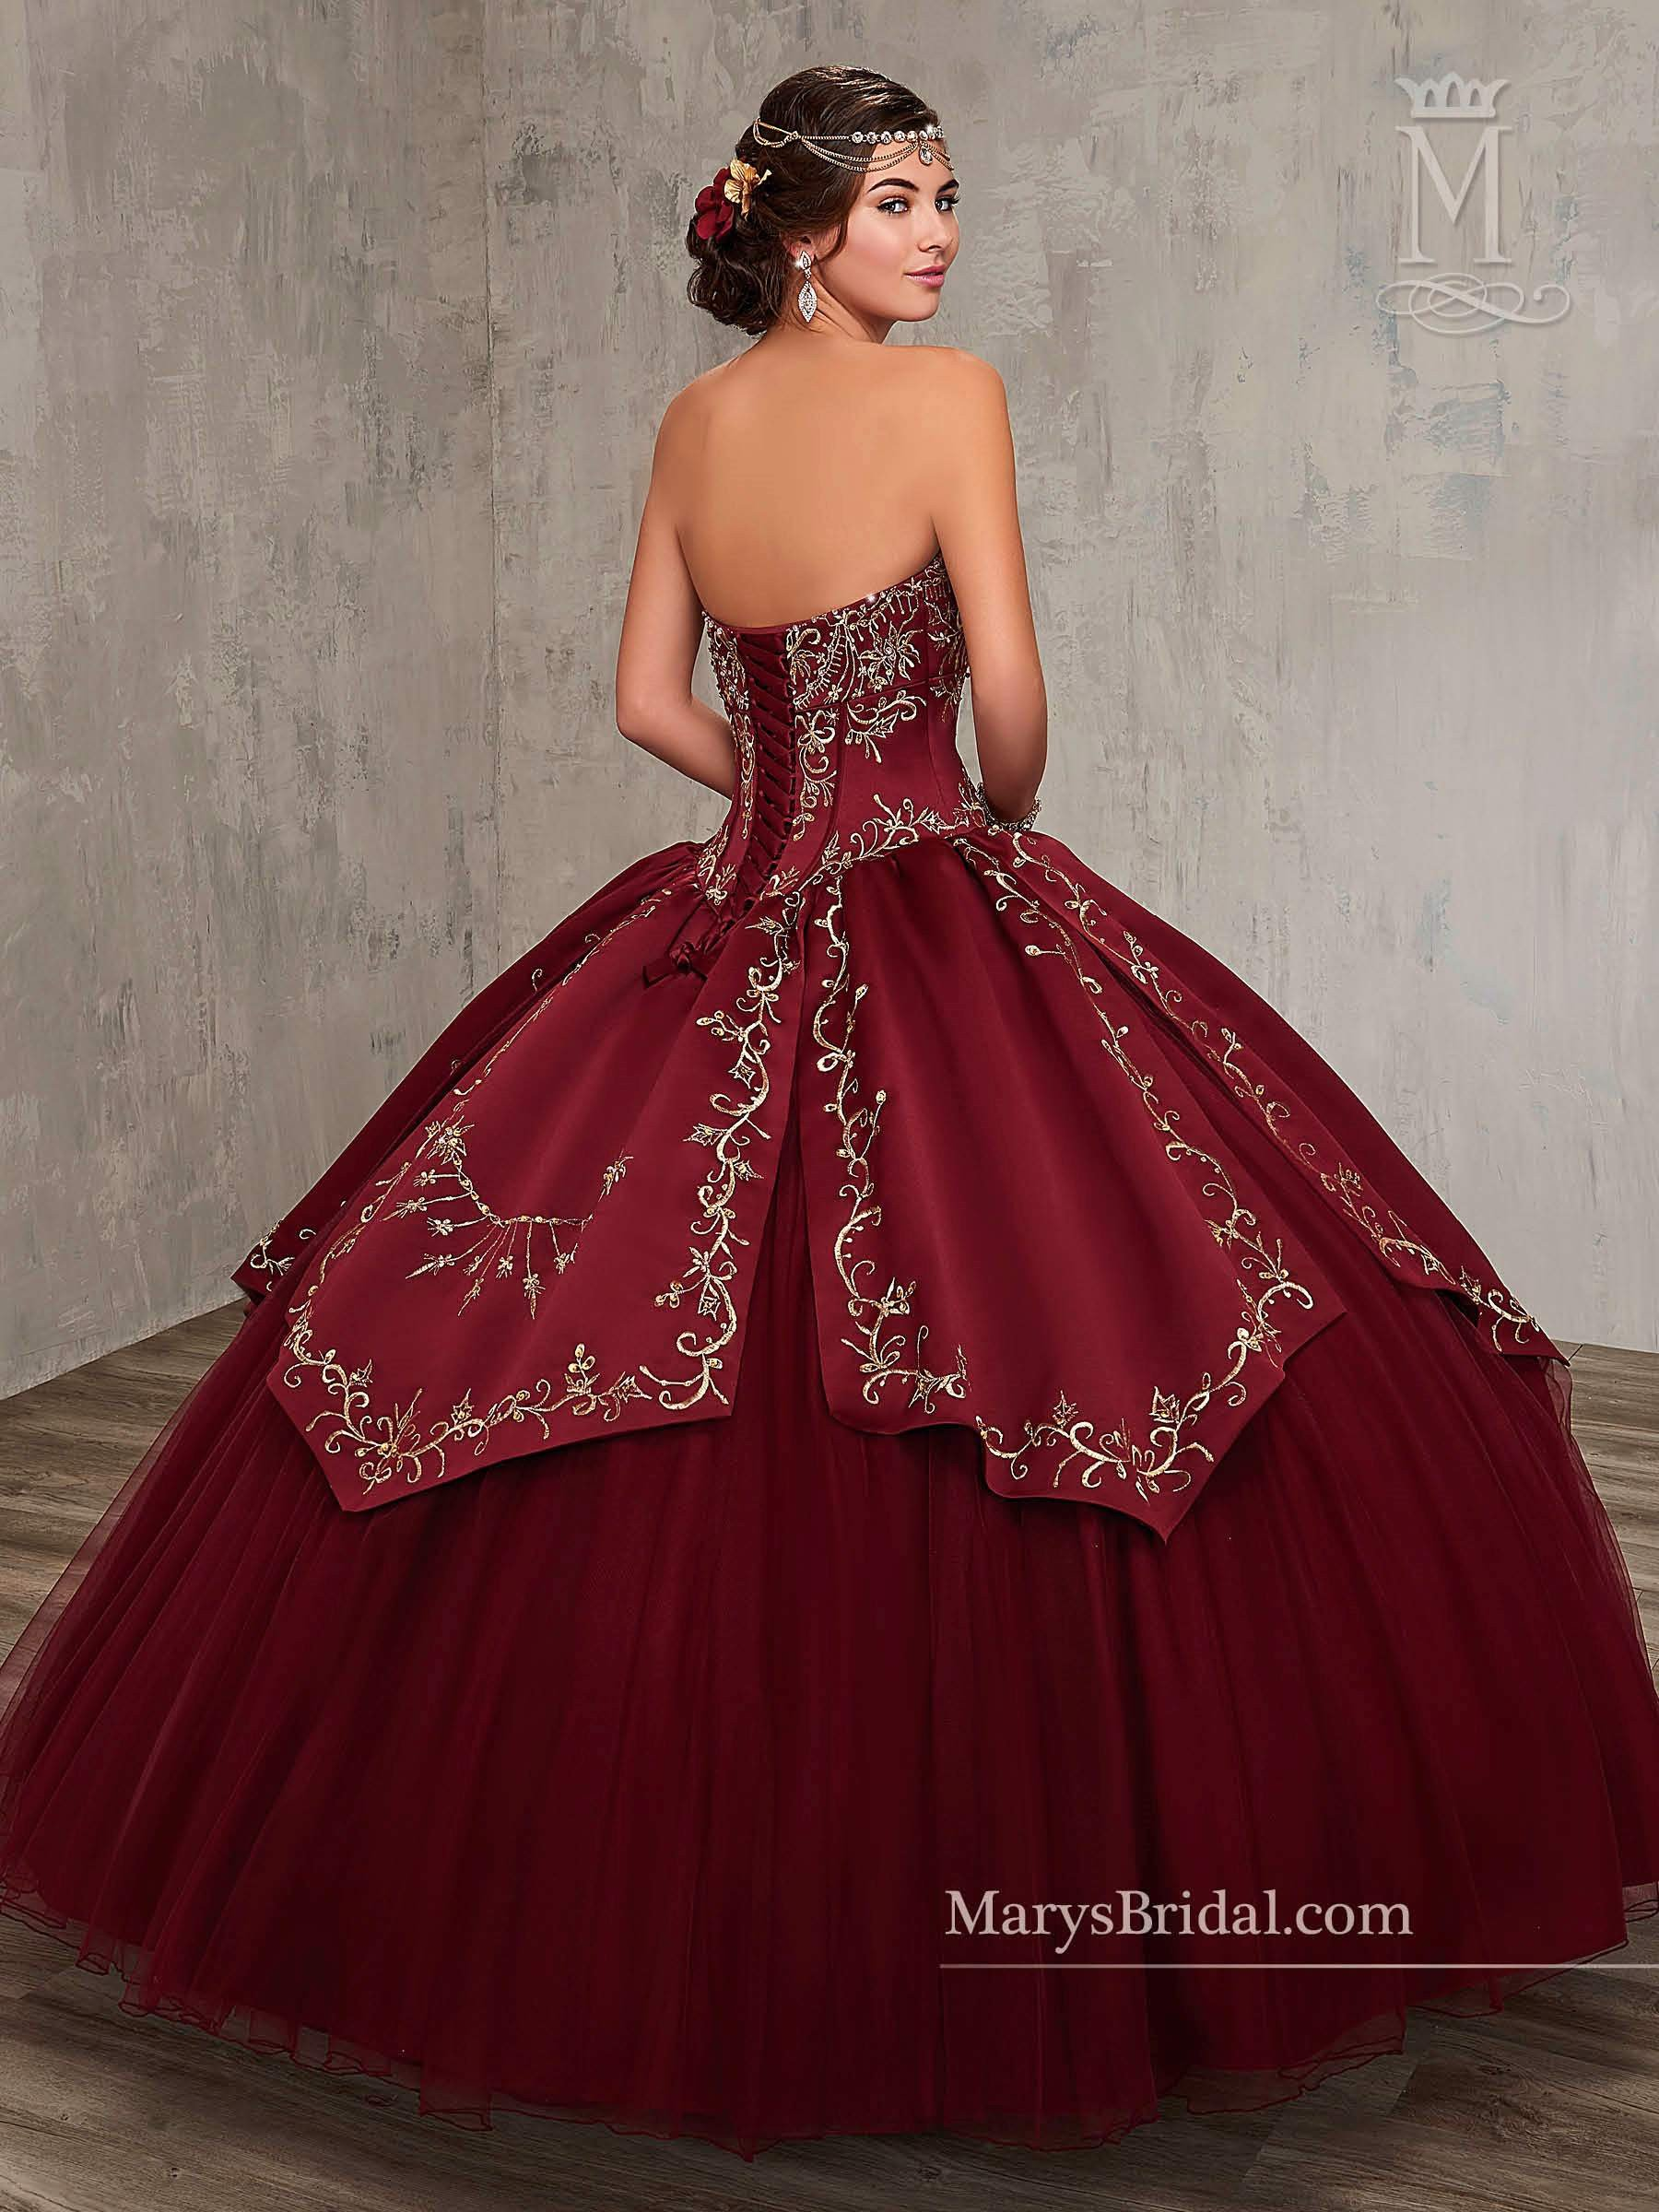 9eb171bd3 Embroidered Satin Quinceanera Dress by Mary s Bridal Princess 4Q516 – ABC  Fashion